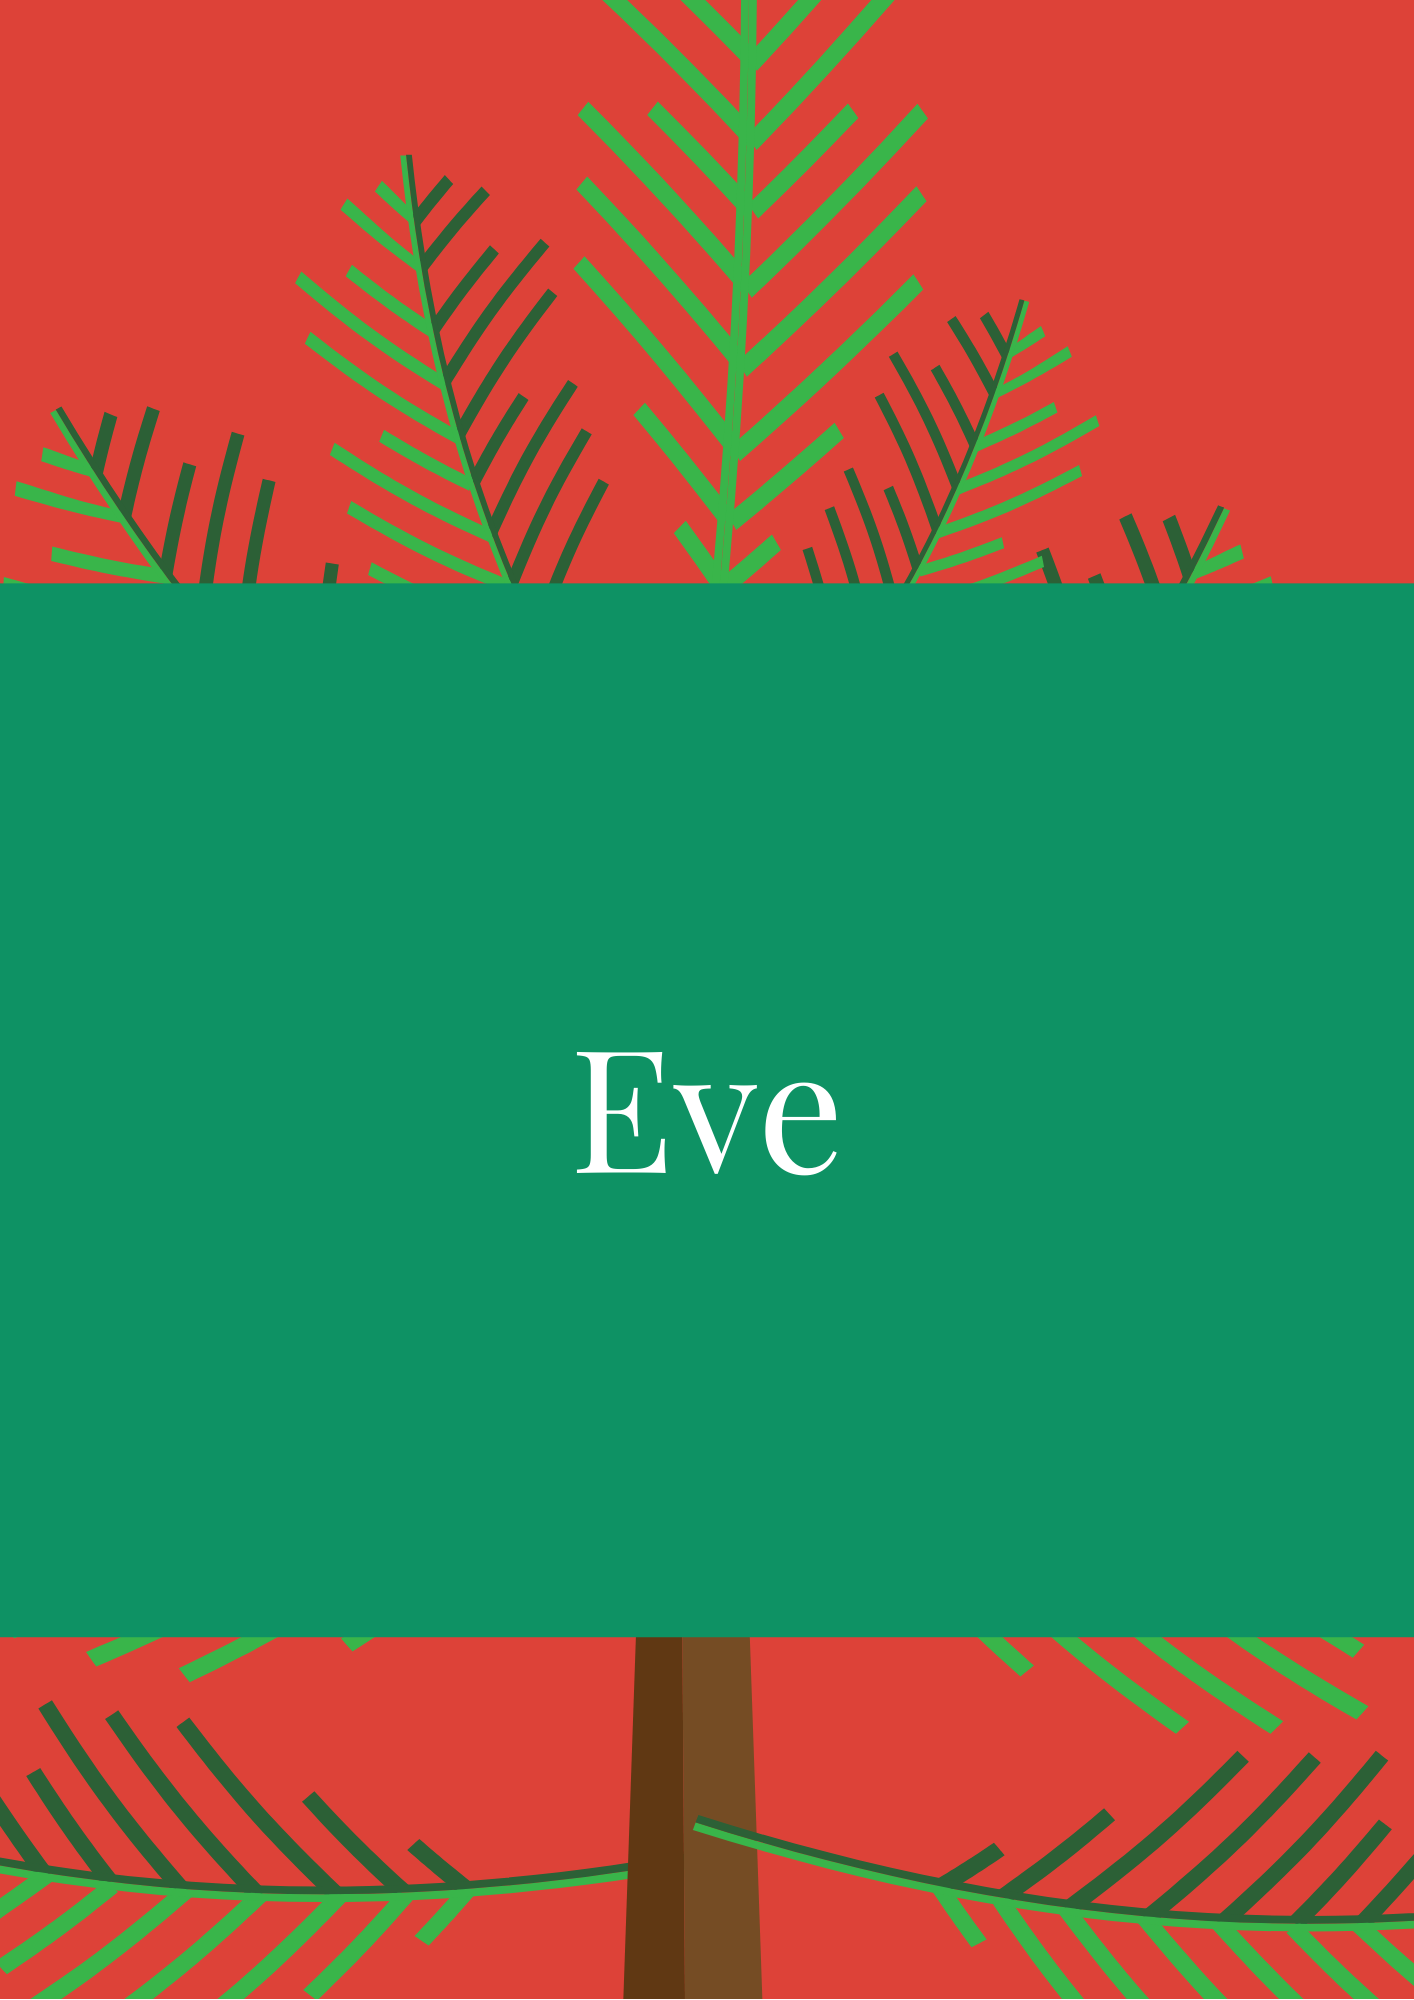 Eve Elf Names